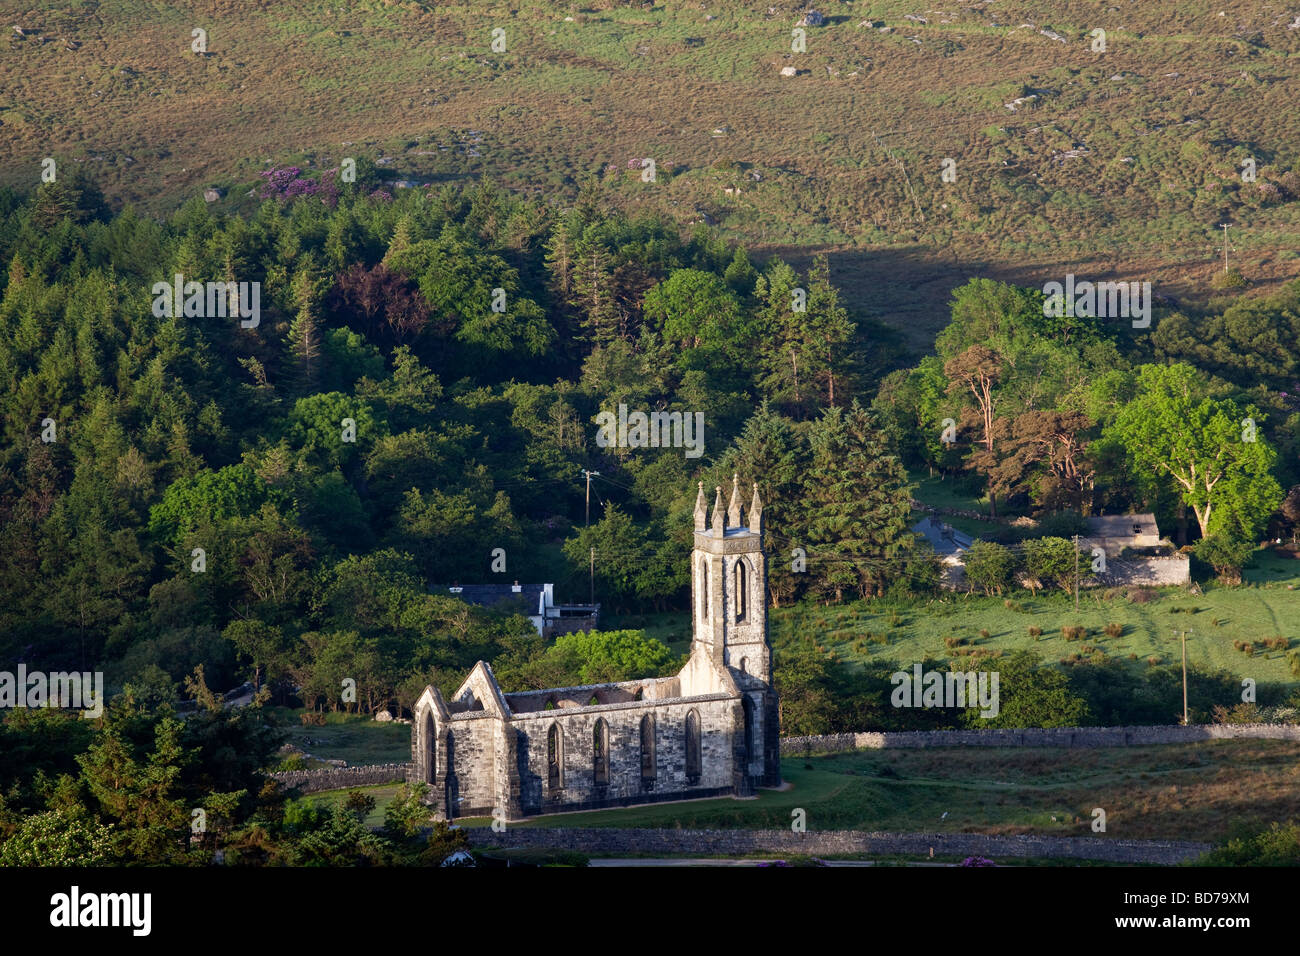 View over looking the Poison Glen and Dunlewy Lake in County Donegal Ireland - Stock Image